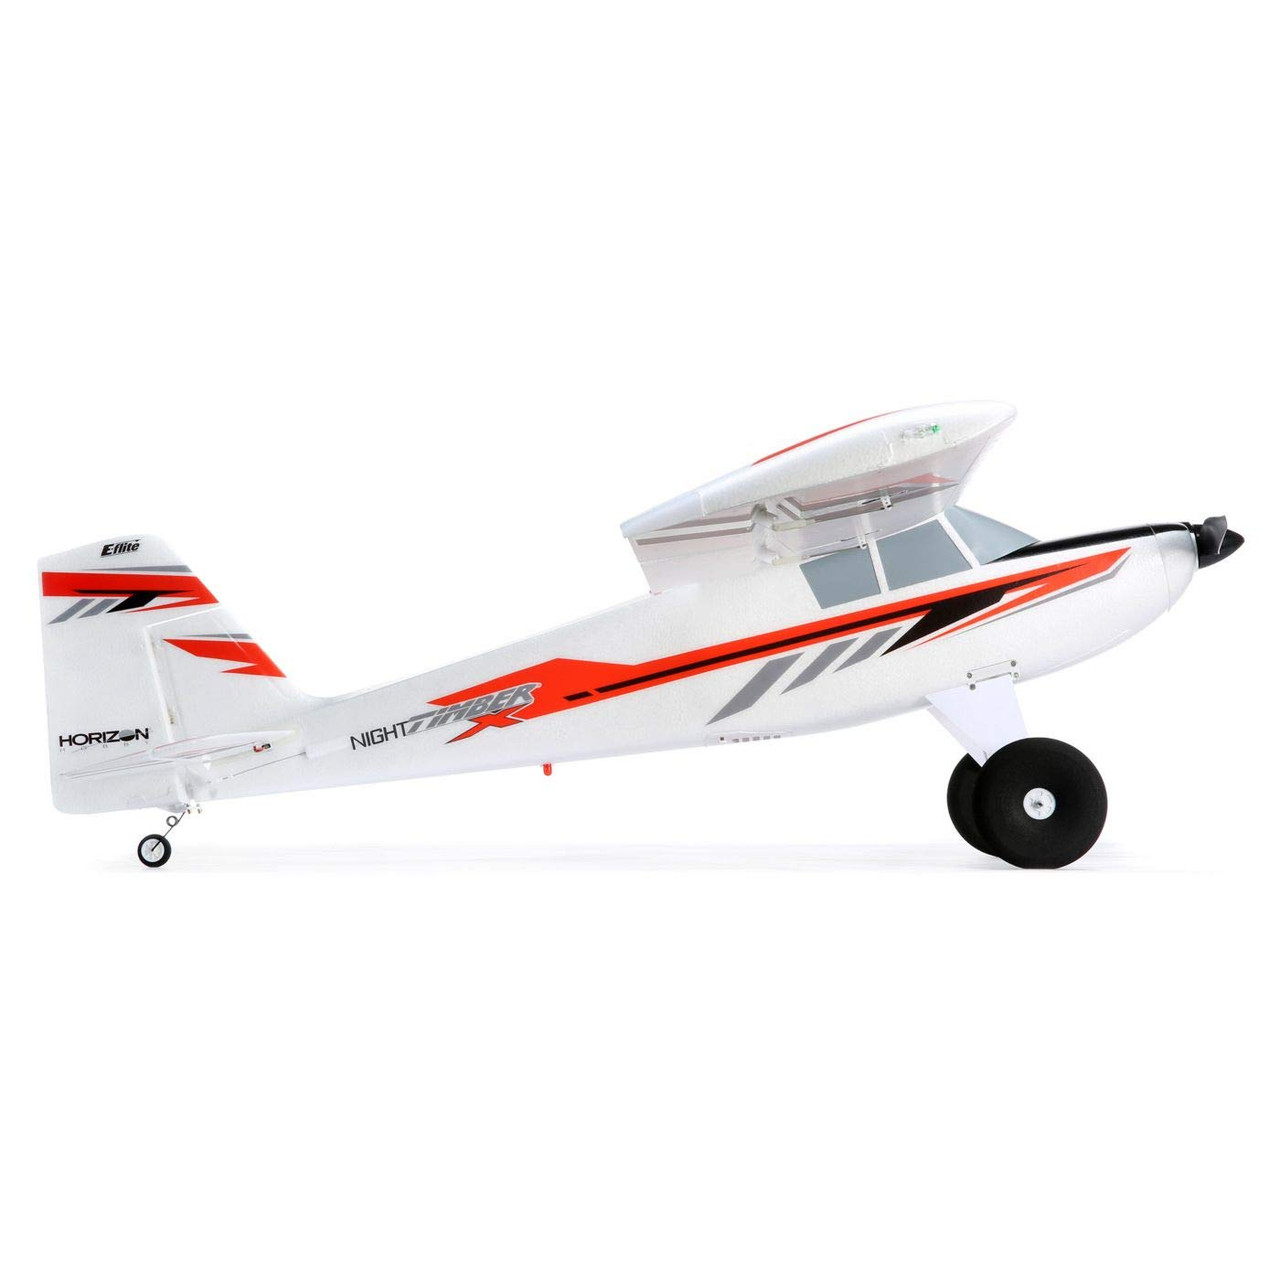 E-flite RC Airplane Night Timber X 1.2m (Transmitter, Battery and Charger not Included) with AS3X & Safe Select, EFL13850